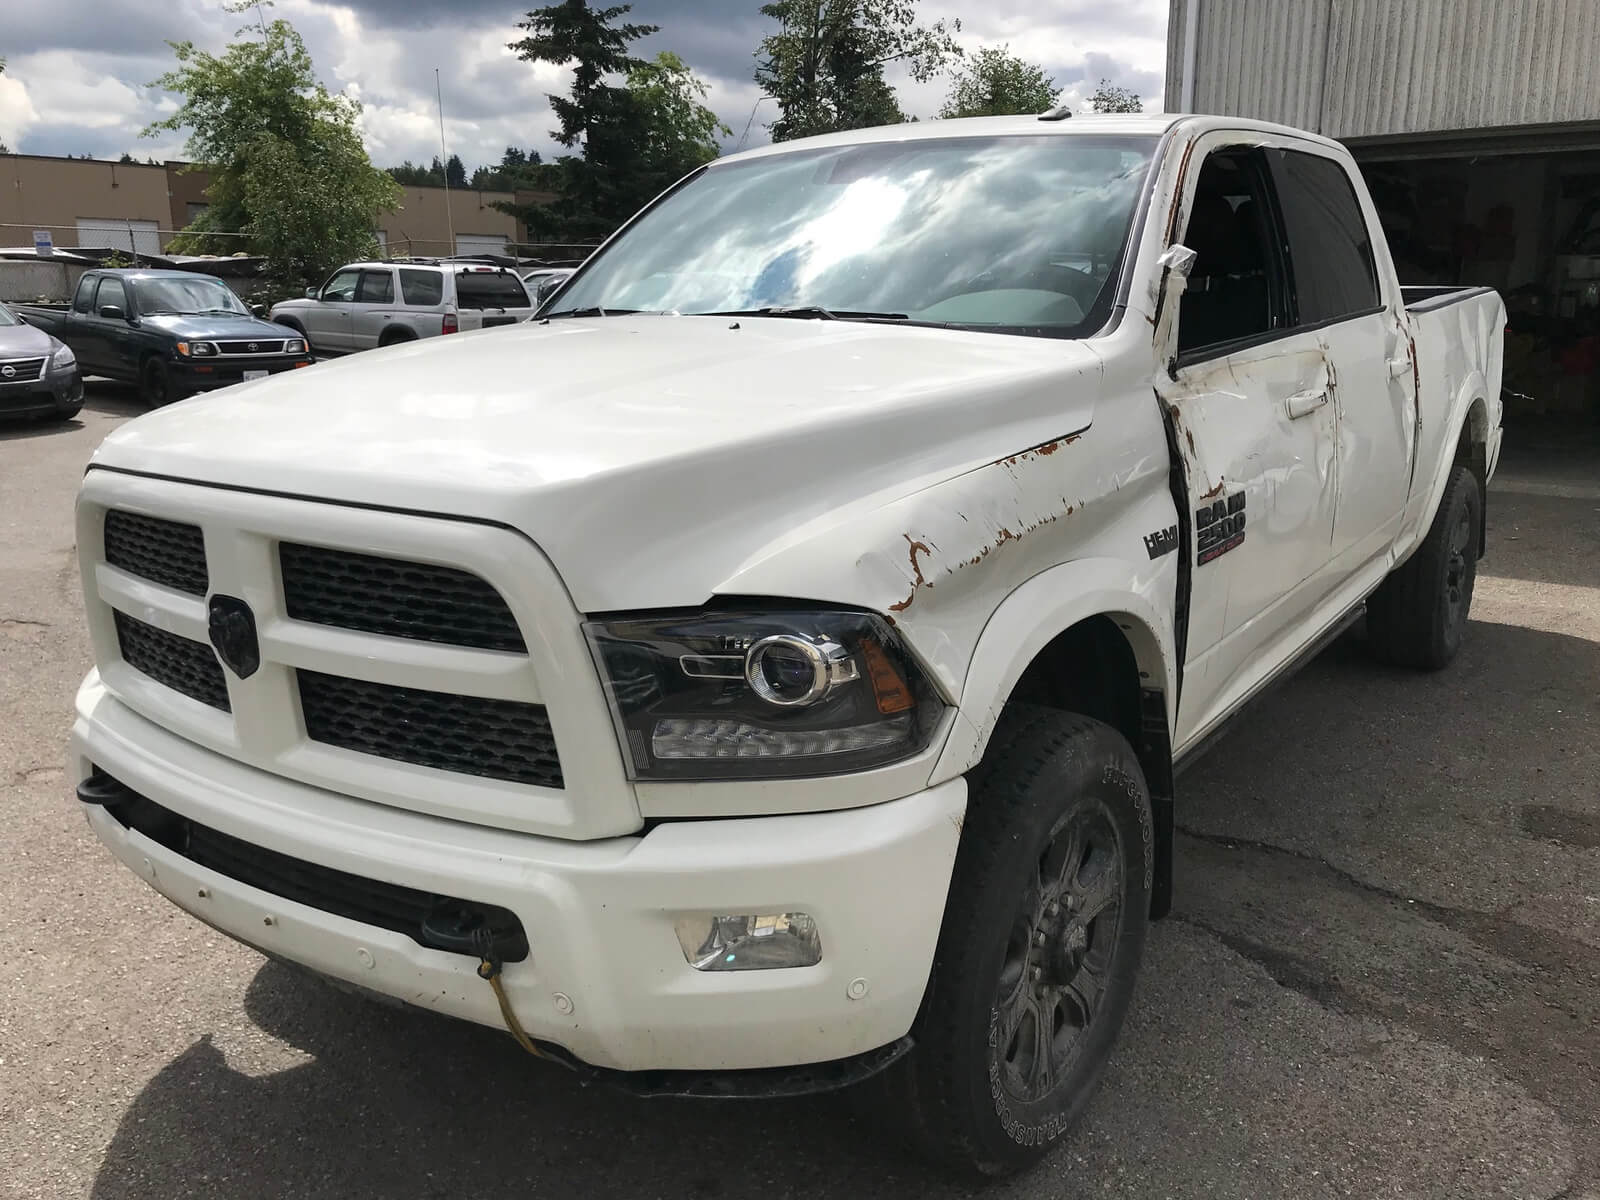 2016 Dodge Ram 2500 Side Damage Repair Project